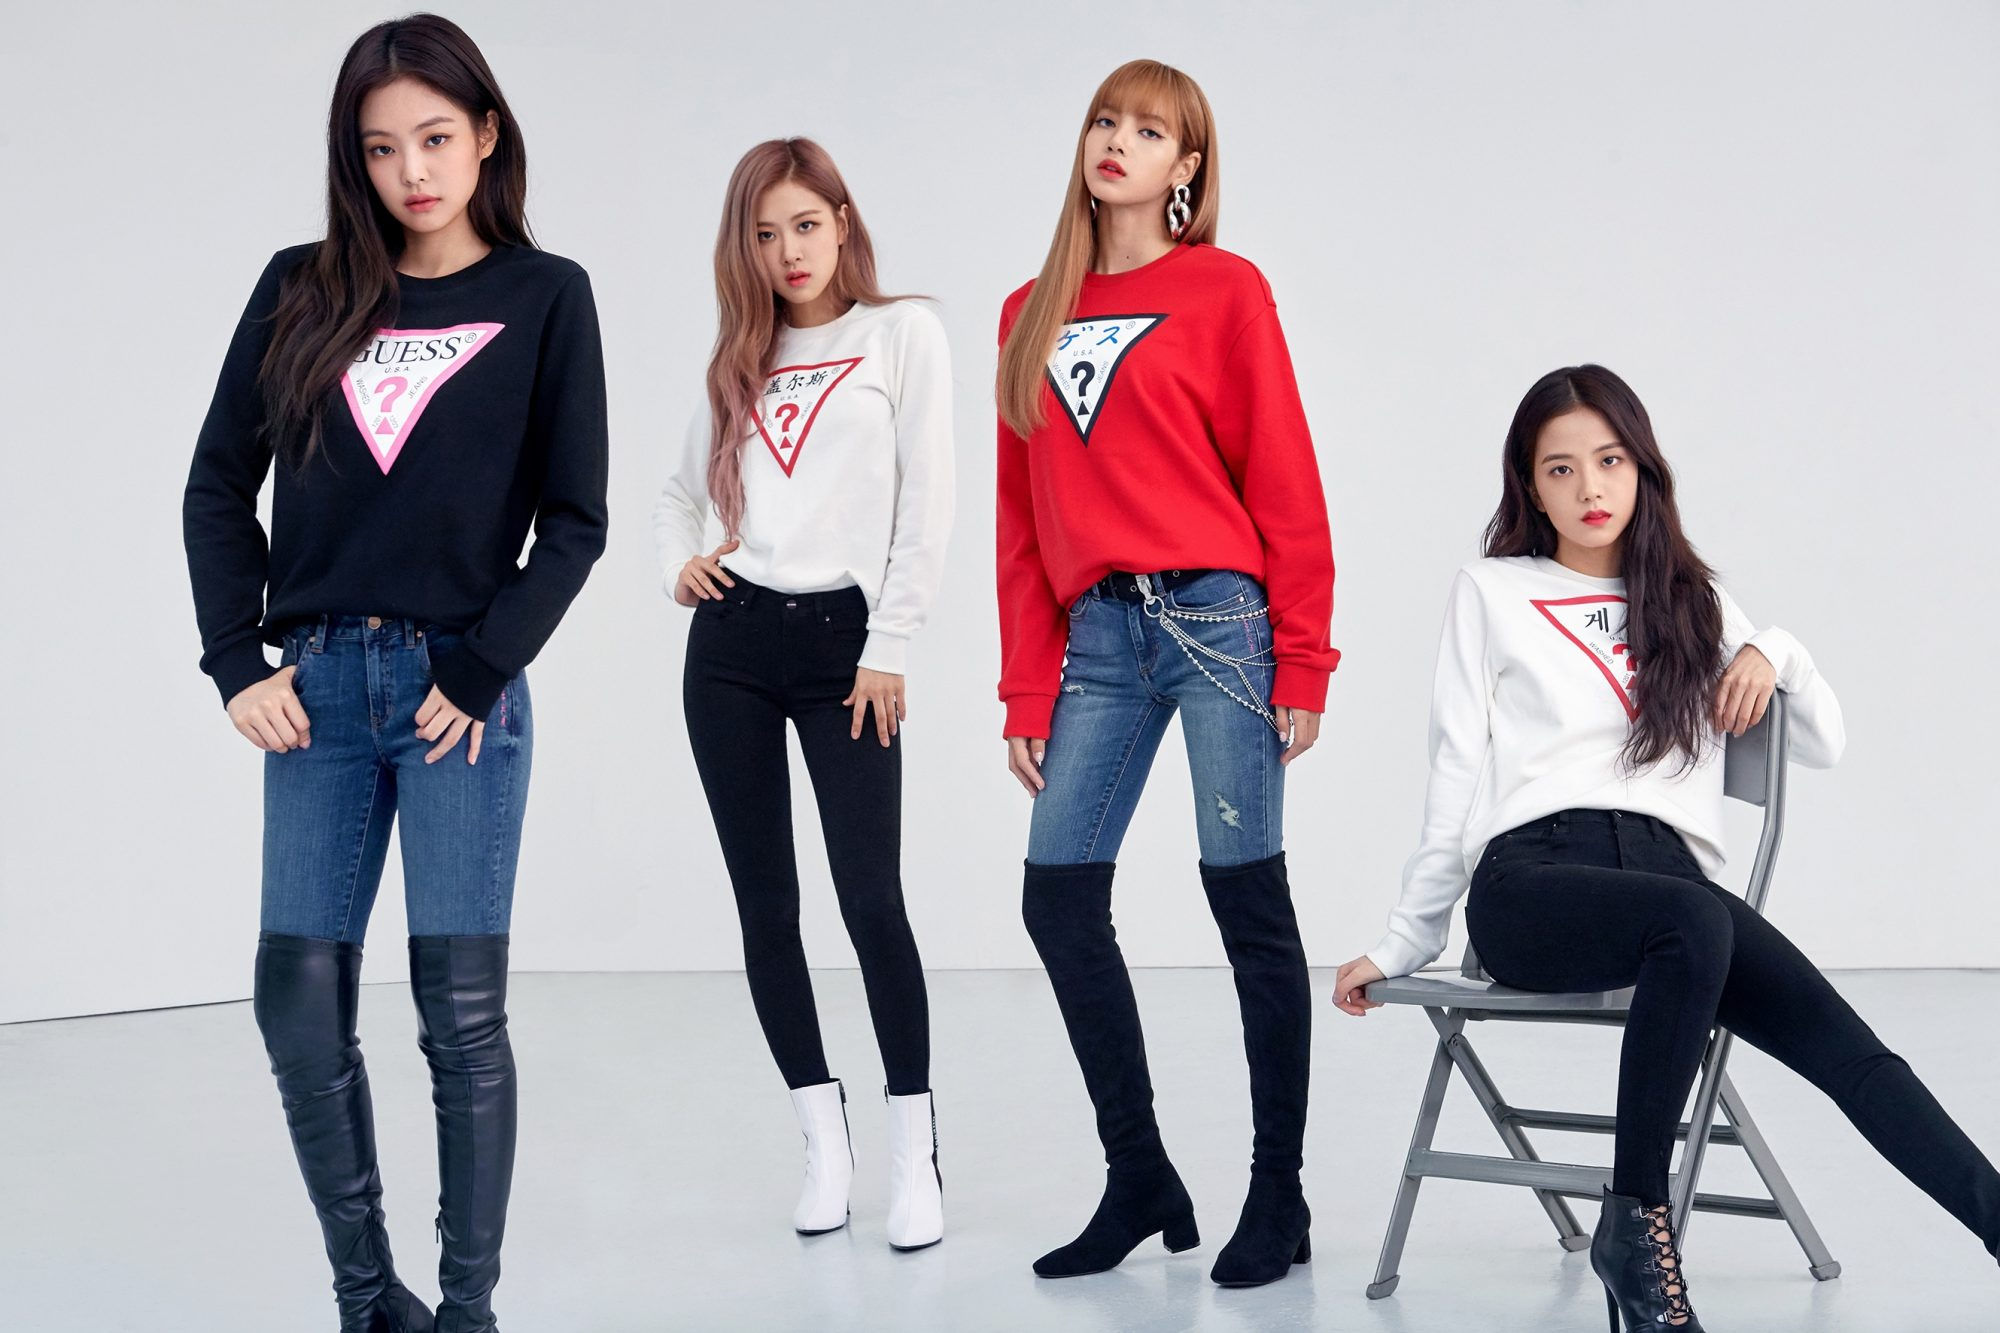 Kids Fall Wallpaper Blackpink For Guess Fw 2018 Hd Photos K Pop Database